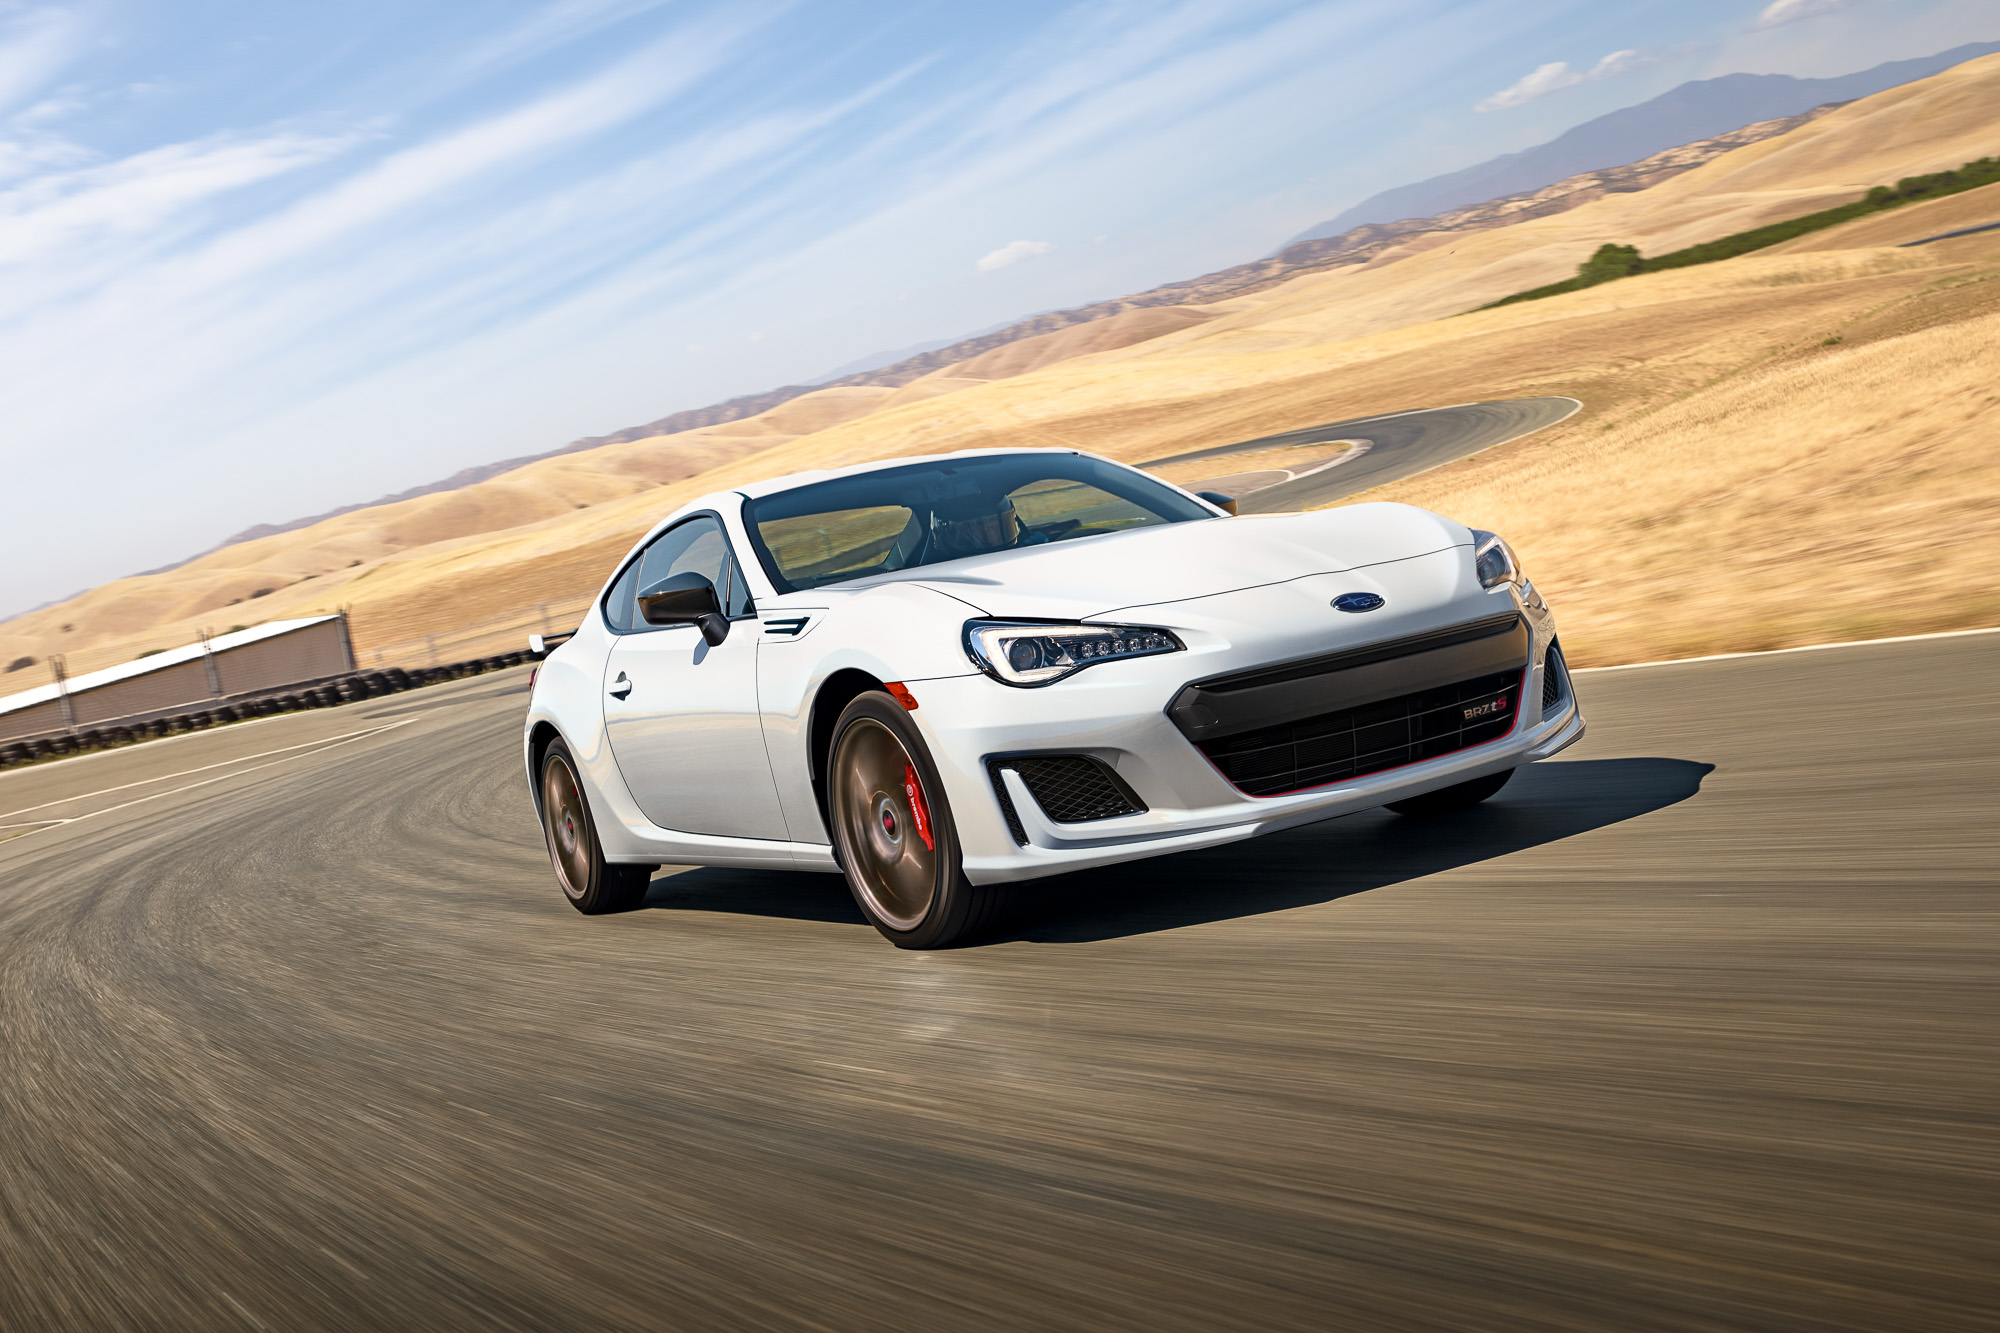 2020 Subaru BRZ Gets Spendier to Start, WRX and WRX STI Costs Creep Up